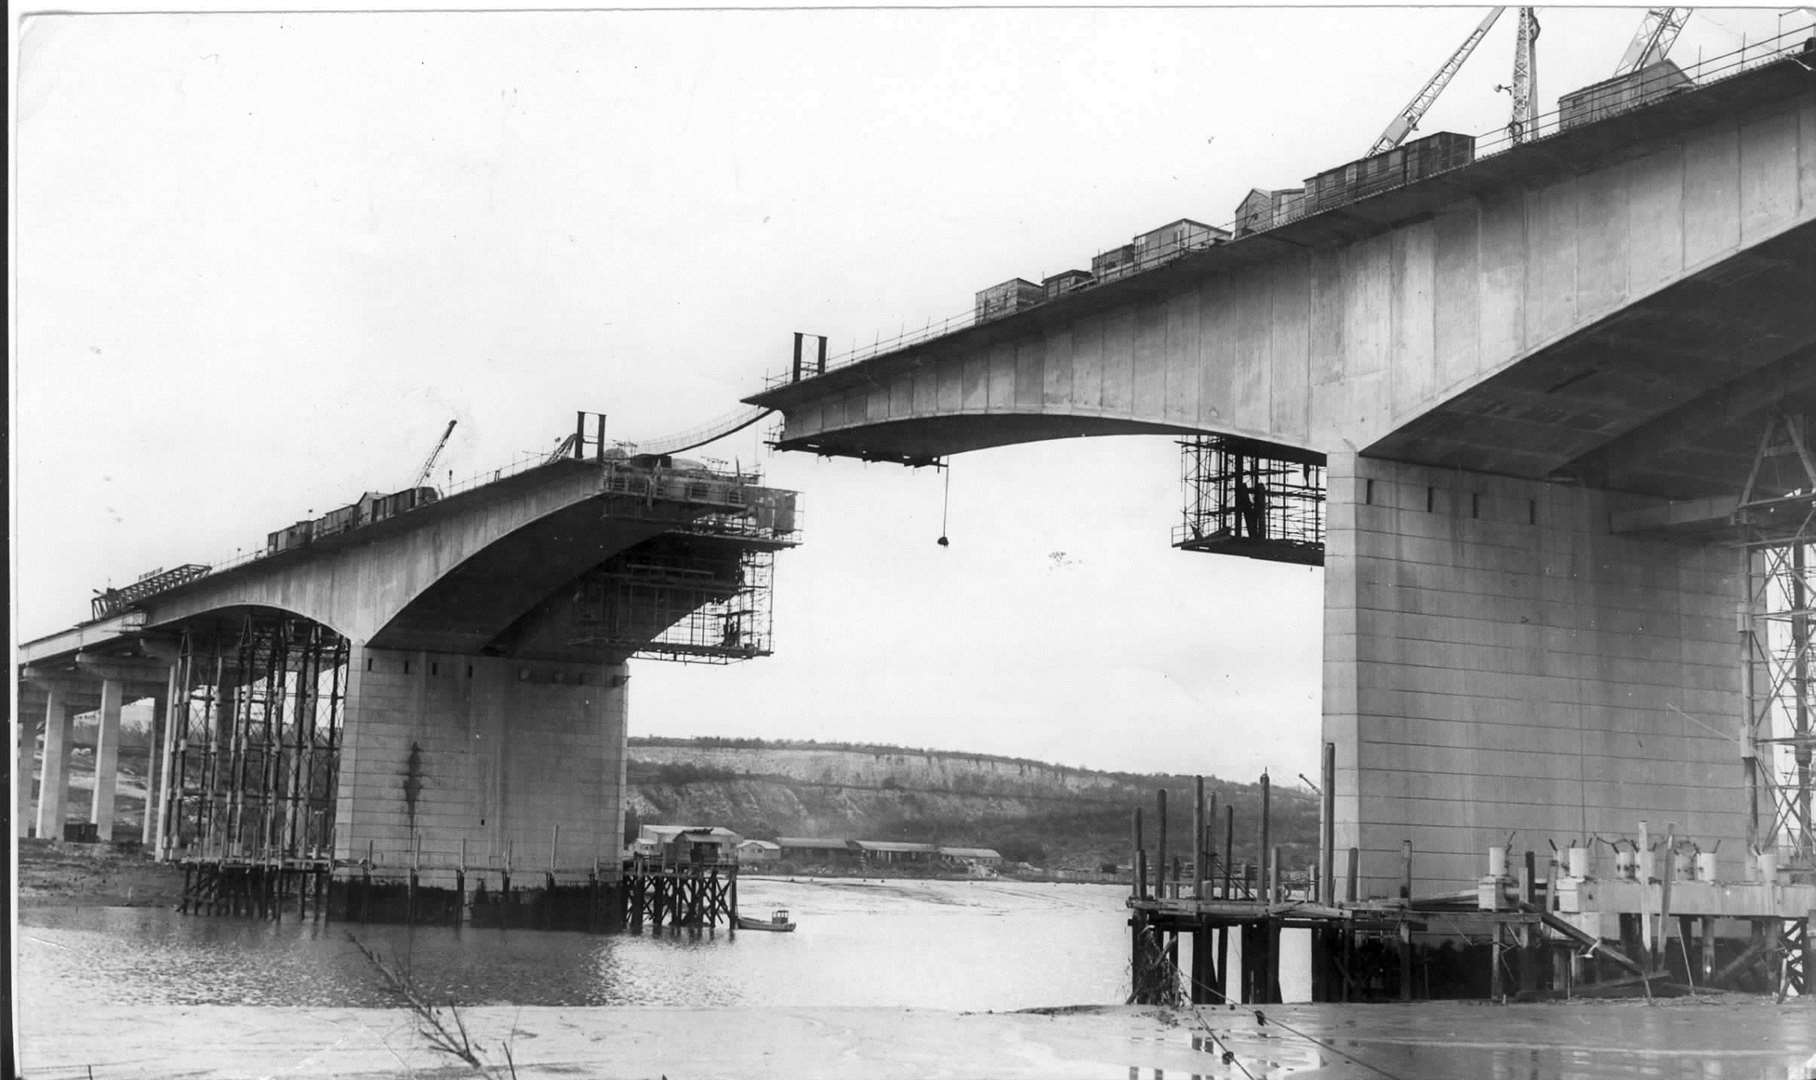 The New Medway Bridge under construction in November 1962